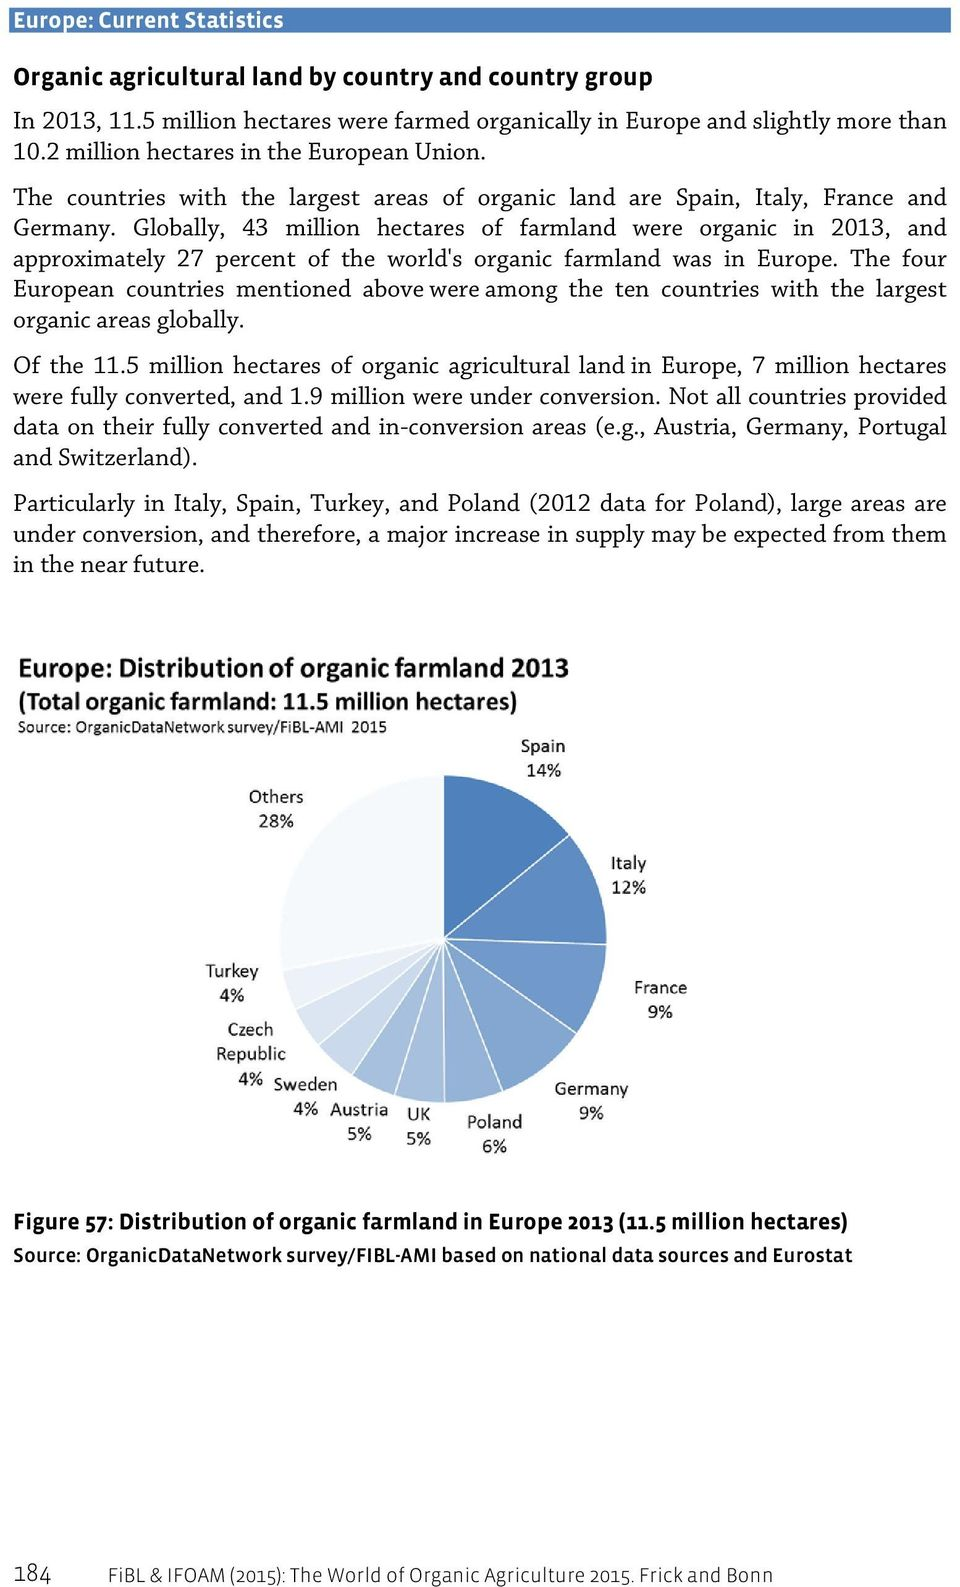 Globally, 43 million hectares of farmland were organic in 2013, and approximately 27 percent of the world's organic farmland was in Europe.